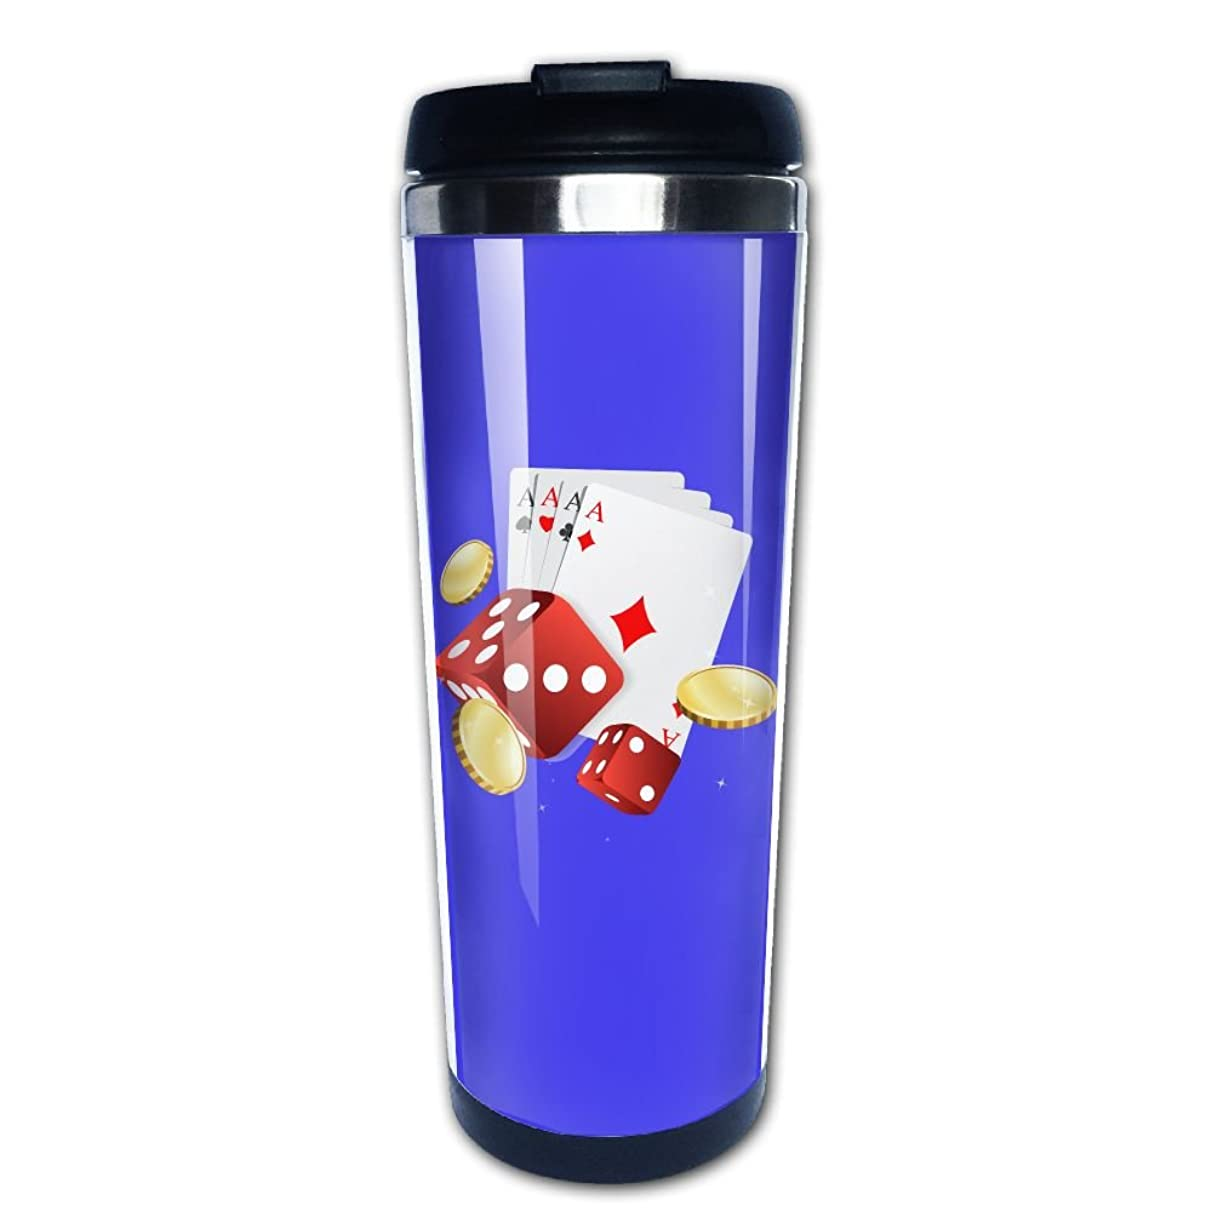 Lojaon Coffee Cup Tumbler Mug 304 Stainless Steel Liner,Poker With Dice Fashion Office Mug 400 Ml Water Bottles Portable Thermos Vacuum Flask